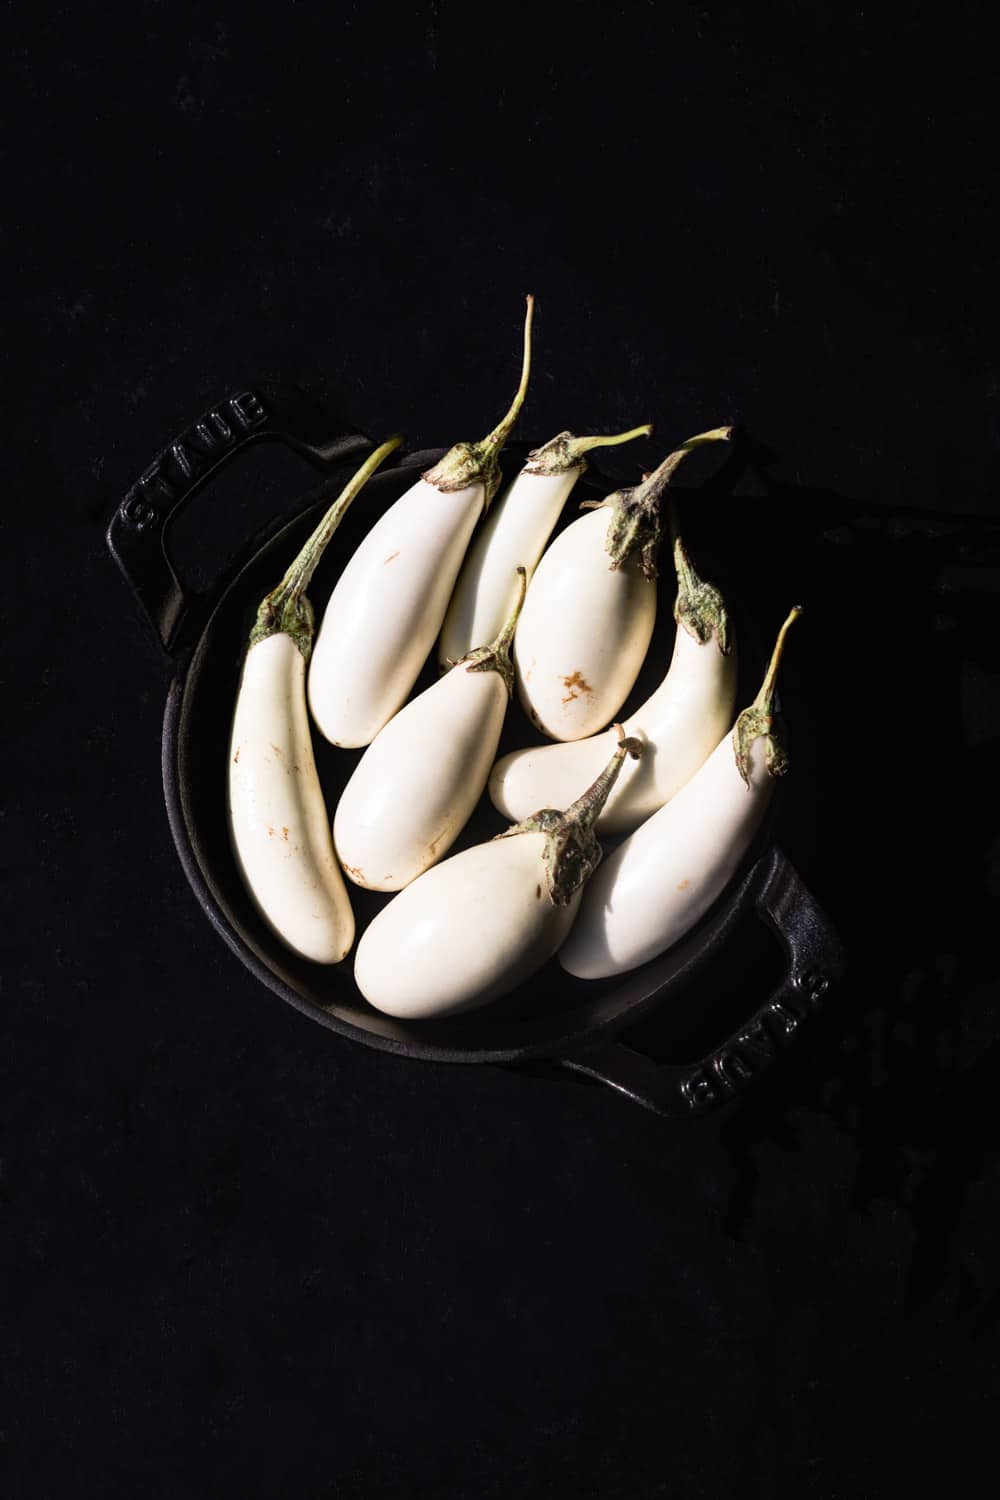 Little white eggplants, that are fresh and whole, in a black bowl on a black background; overhead shot.